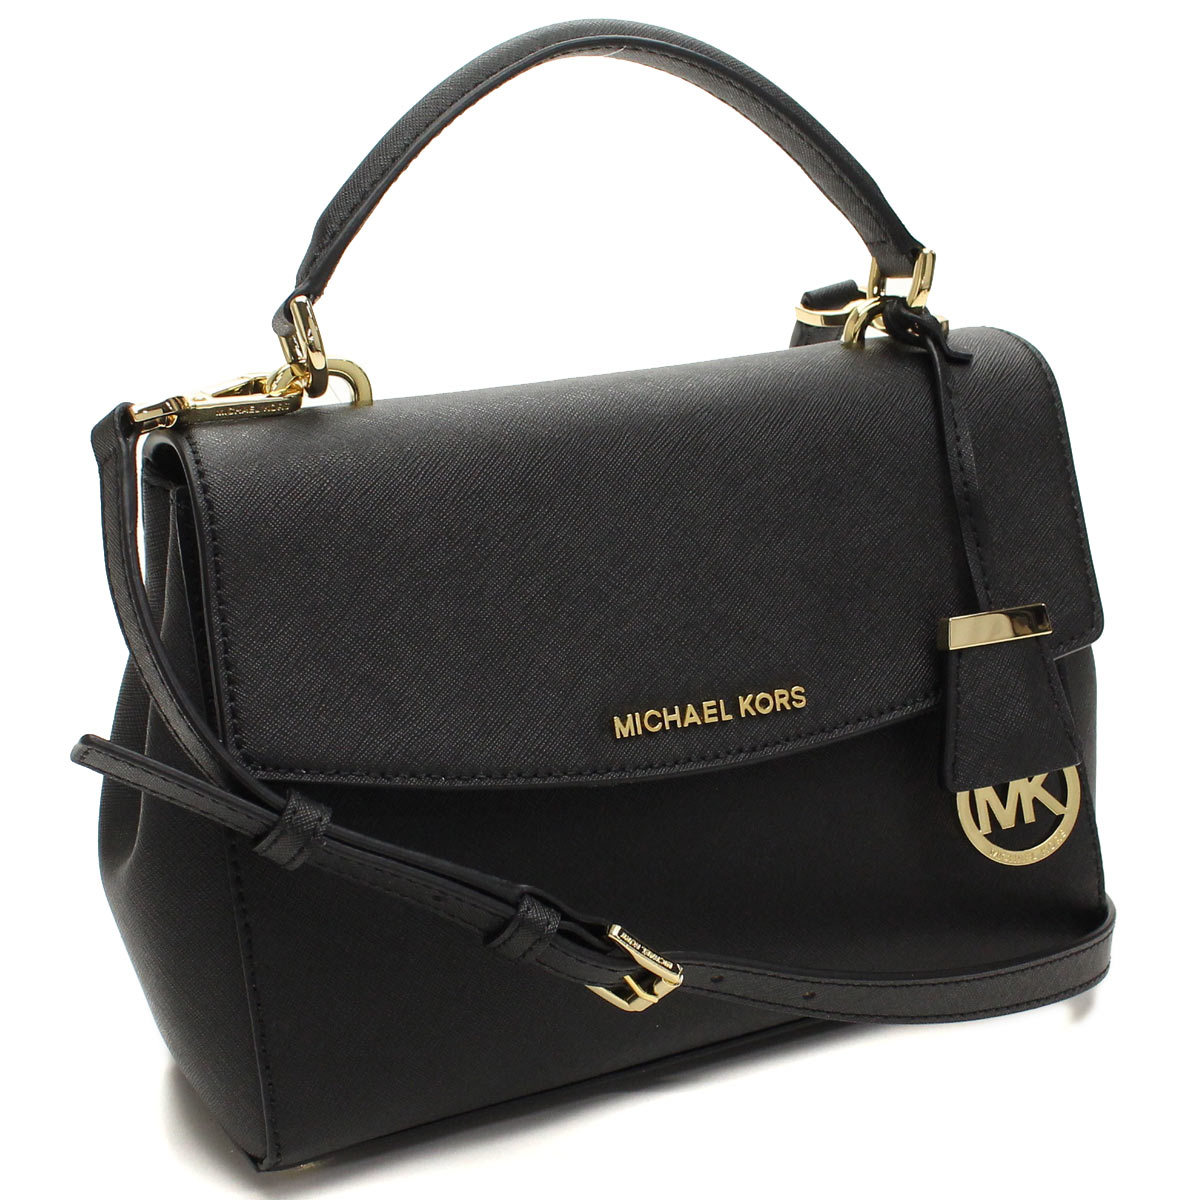 Hit The Total Brand Whole Tax Free Michael Kors Ava Handbag 30t5gavs2l Black Taxfree Send By Ems Authentic A New